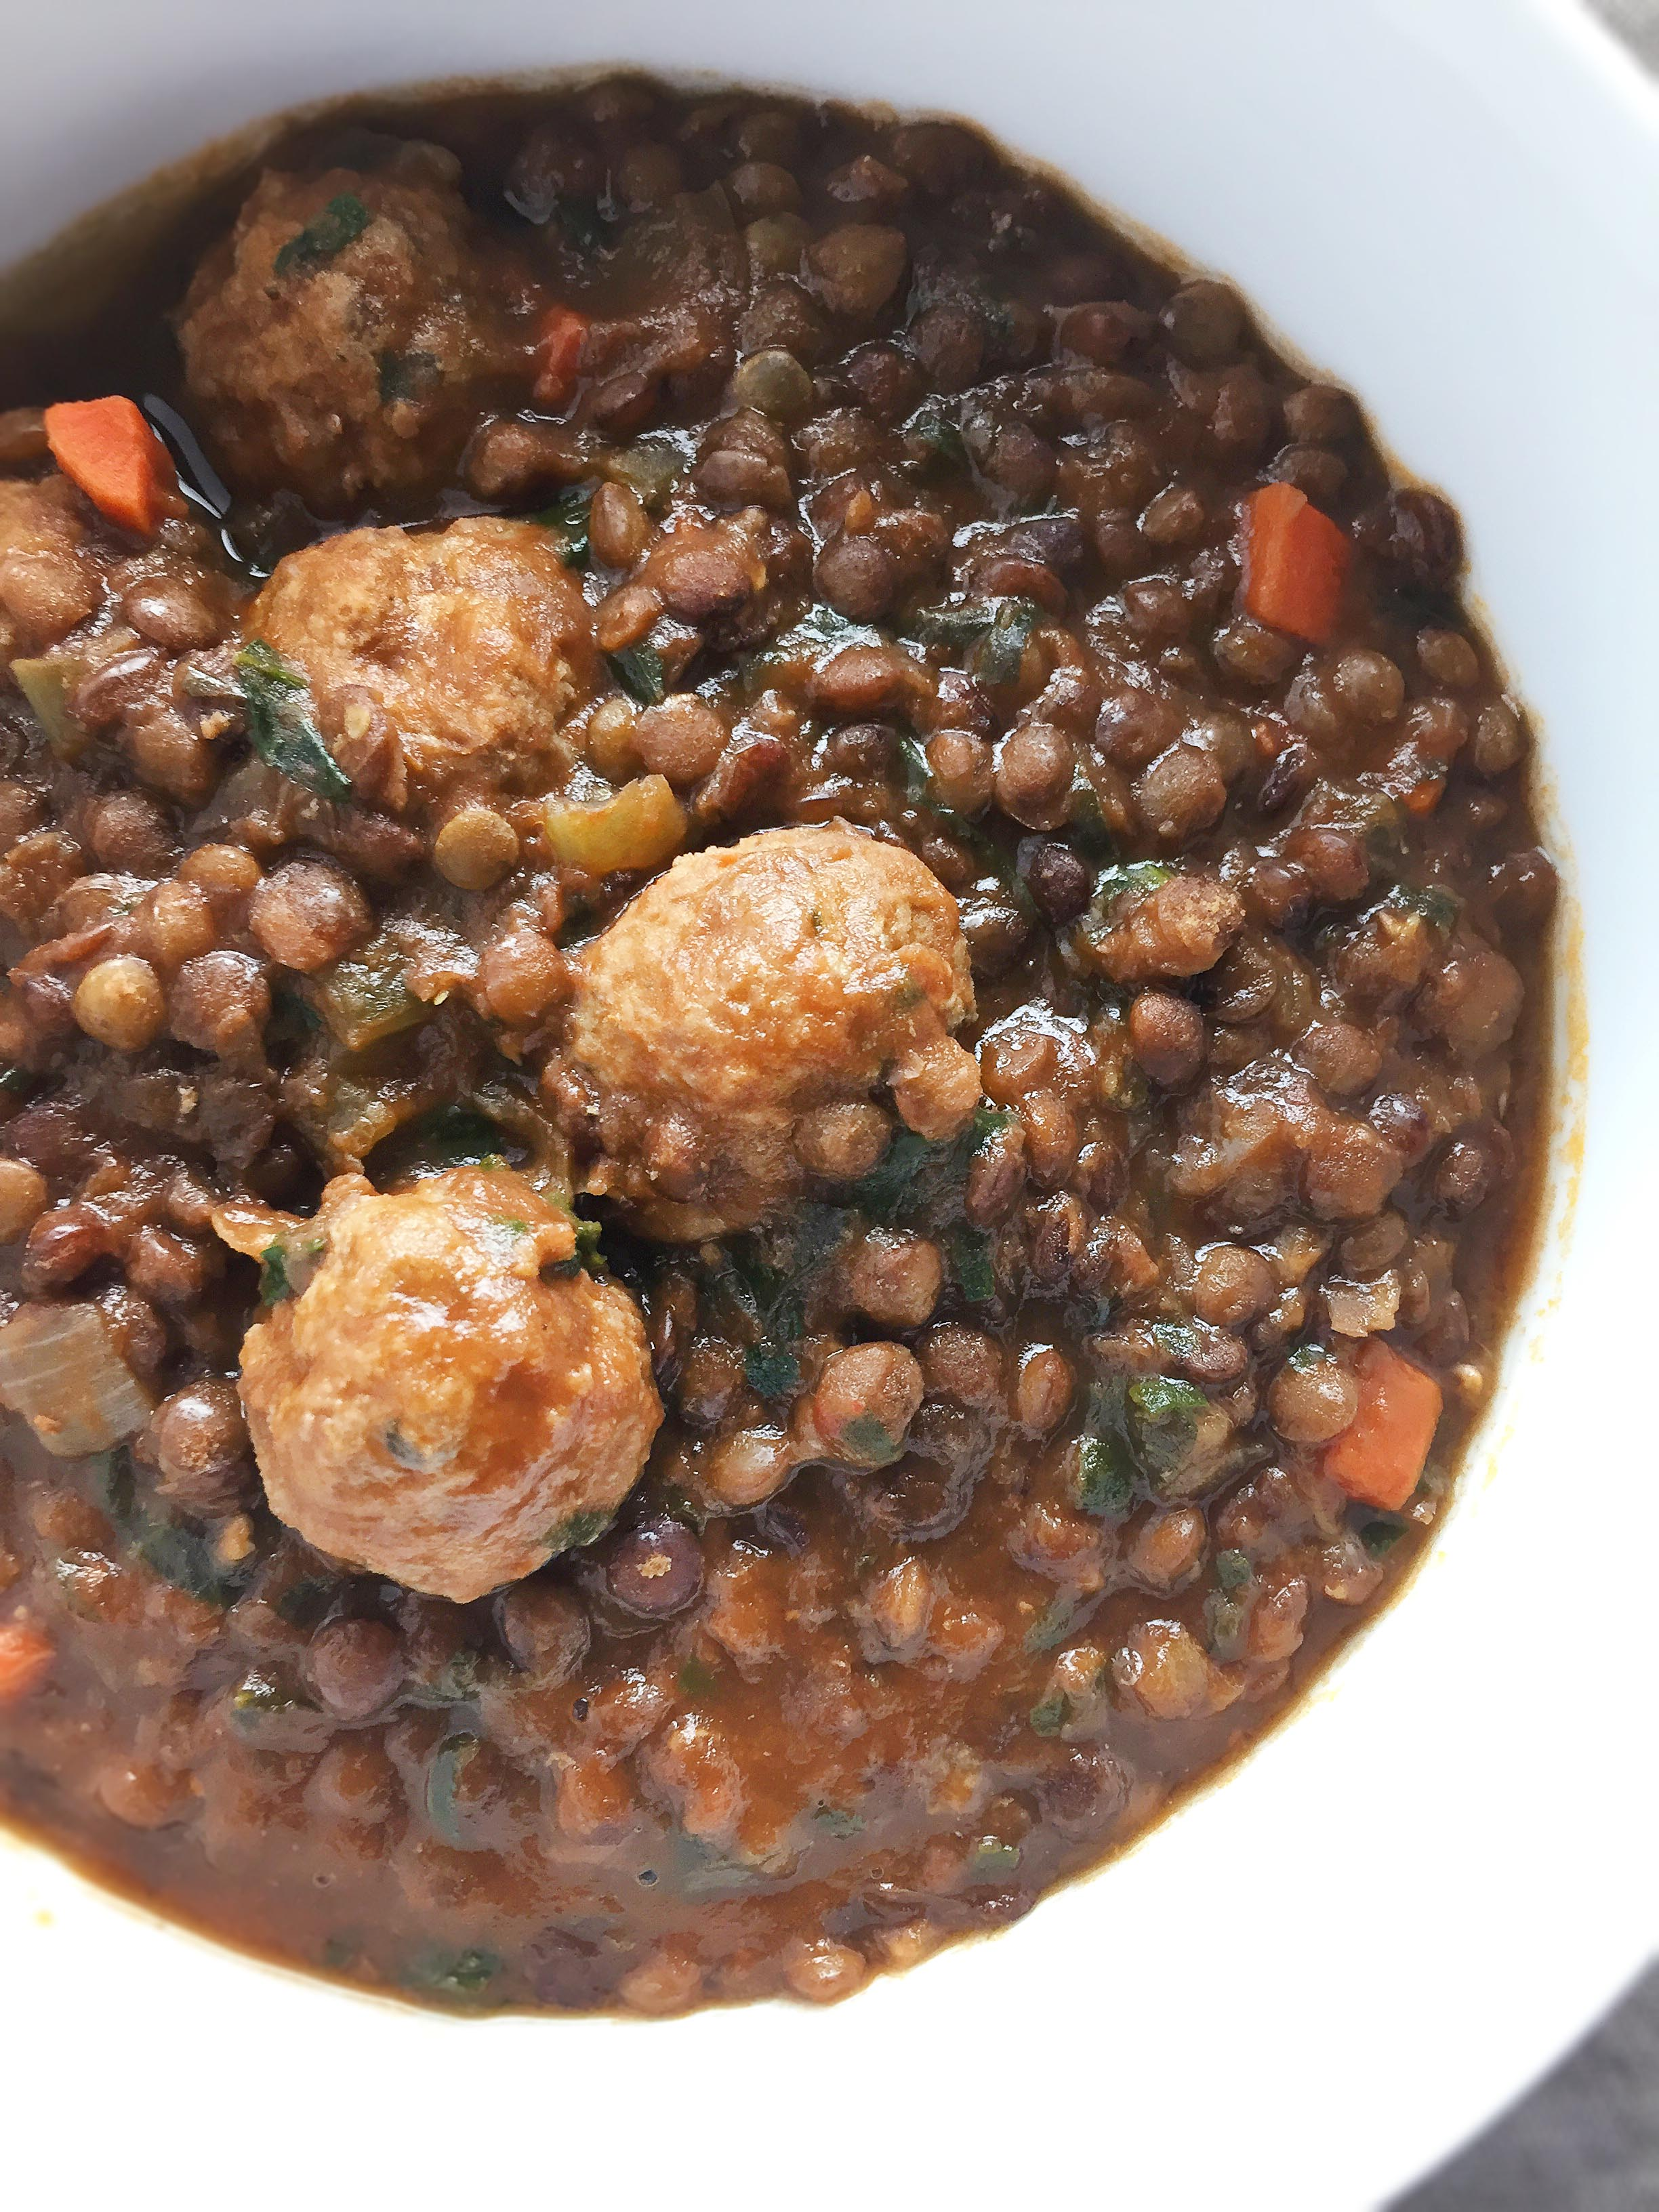 lentil_soup_with_sausage_meatballs11.jpg